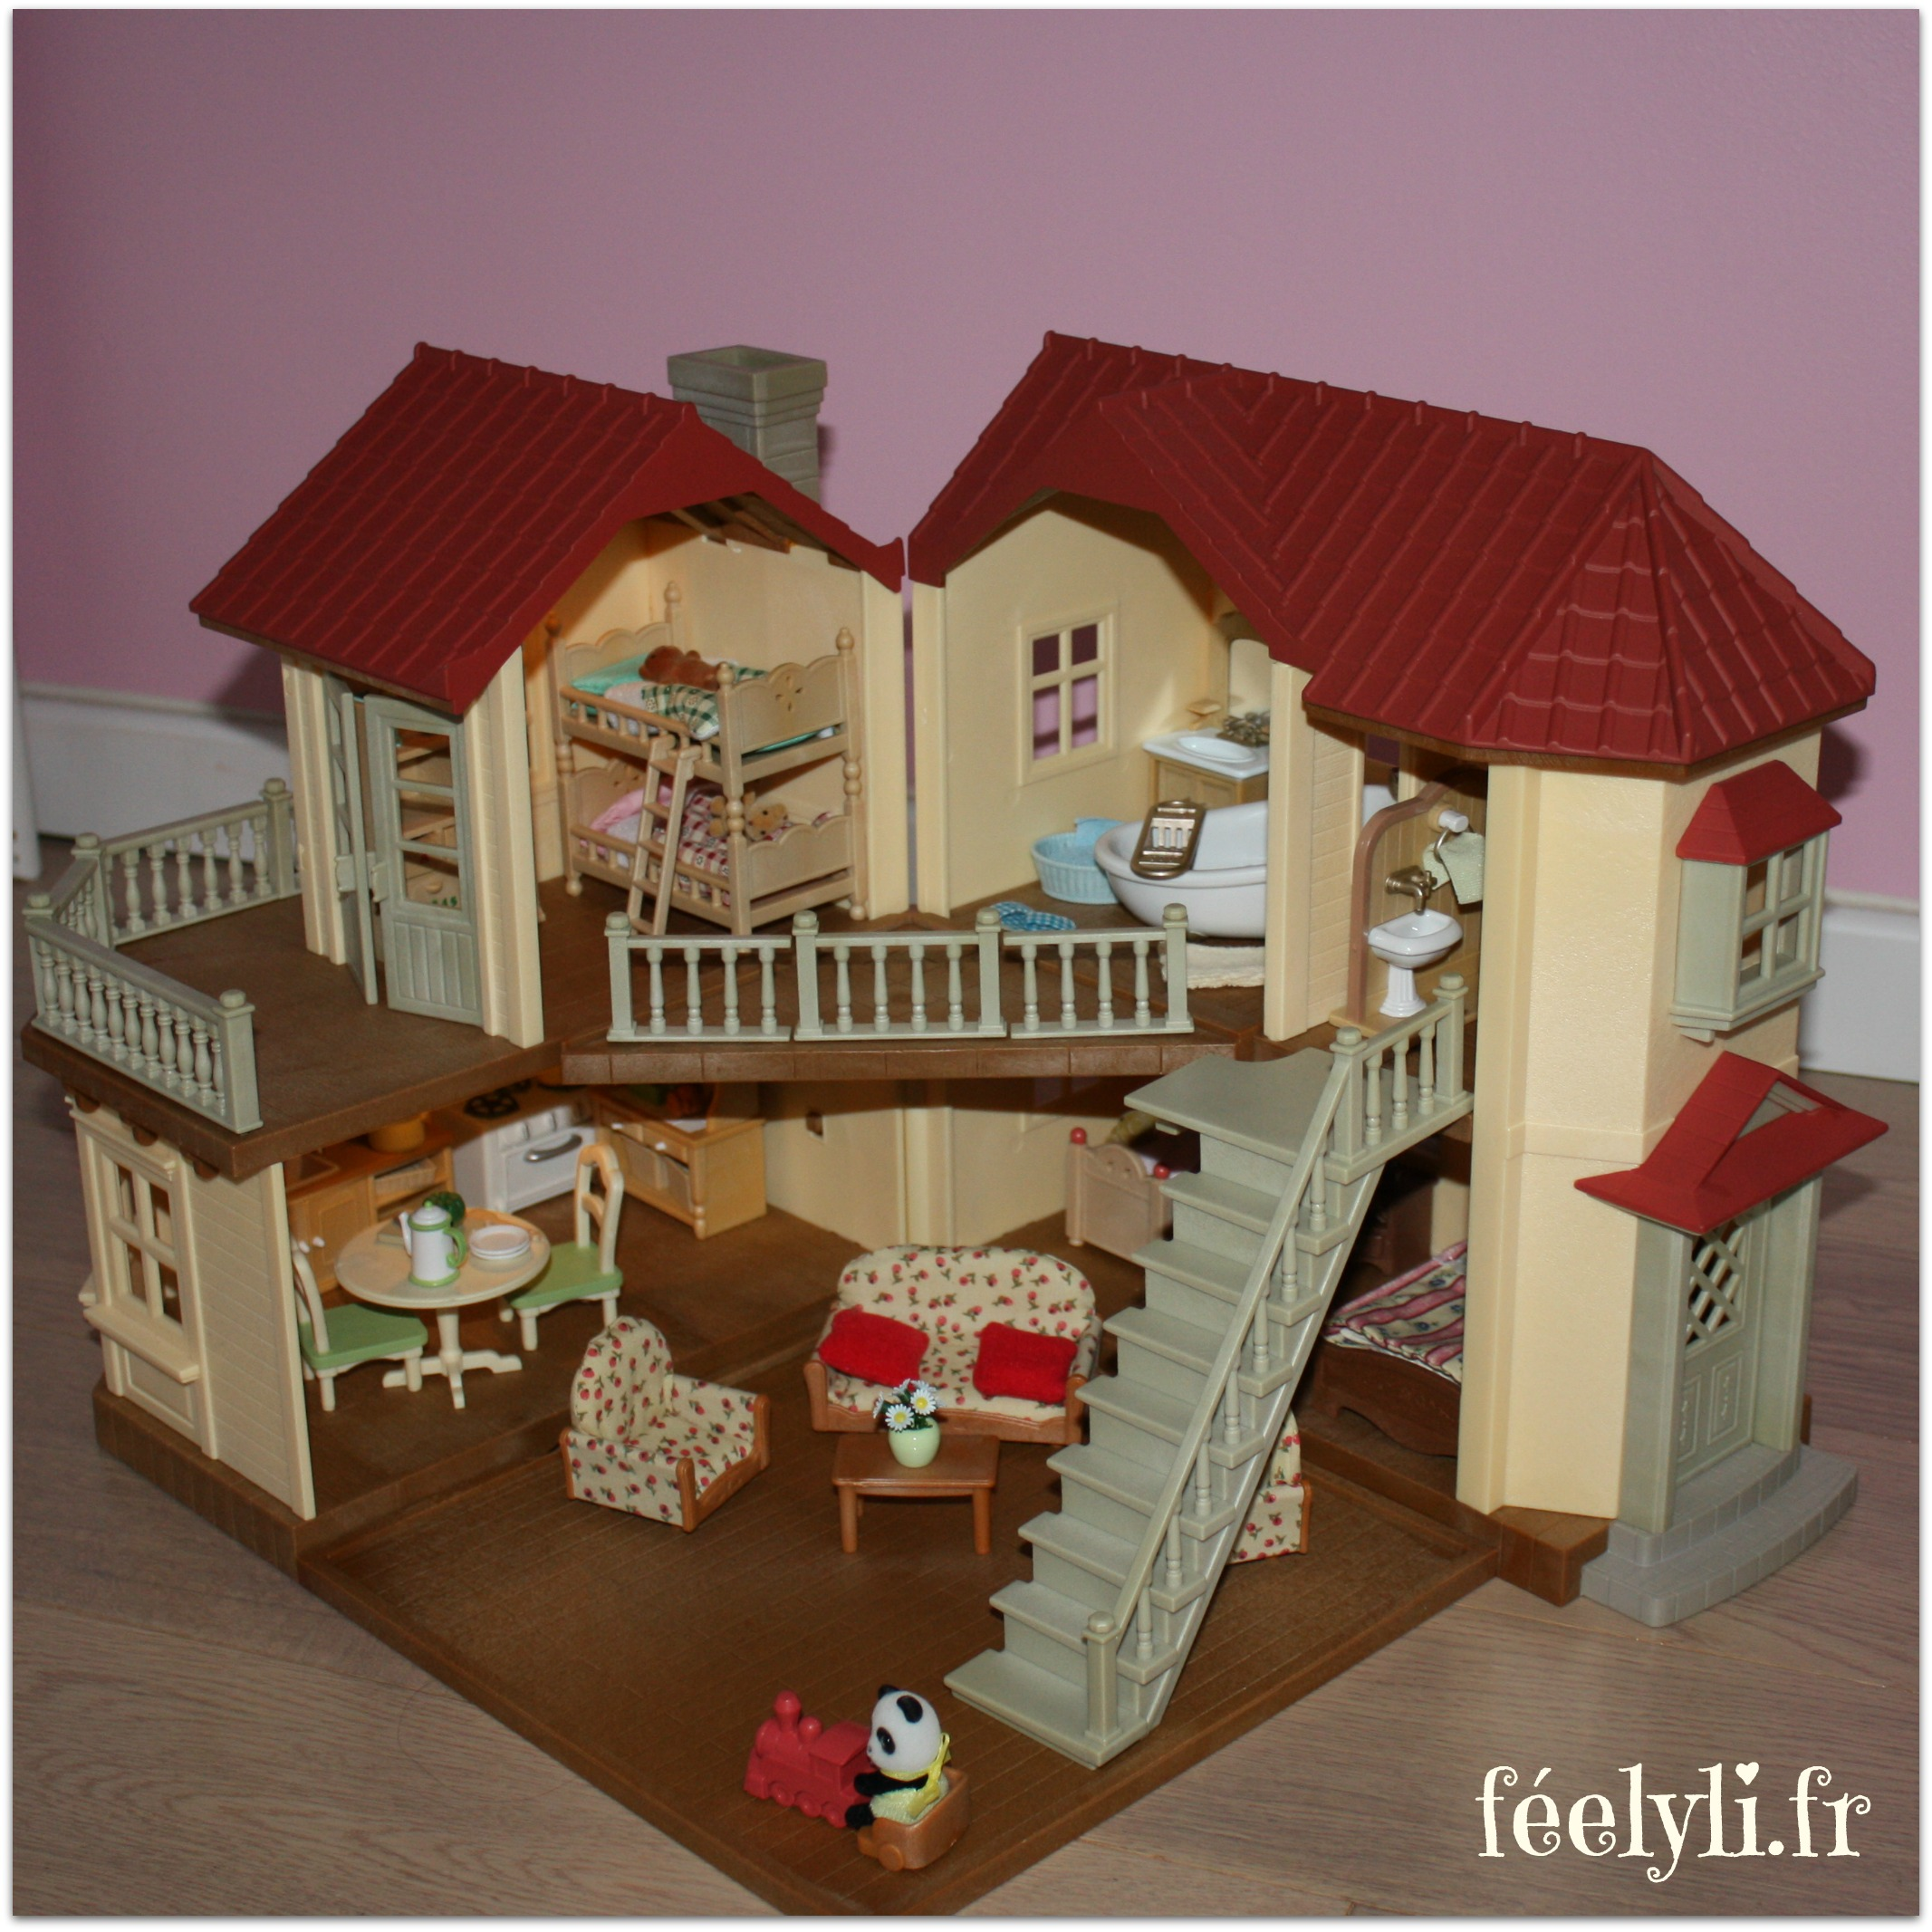 les sylvanian families la grande maison tradition clair e f elyli. Black Bedroom Furniture Sets. Home Design Ideas